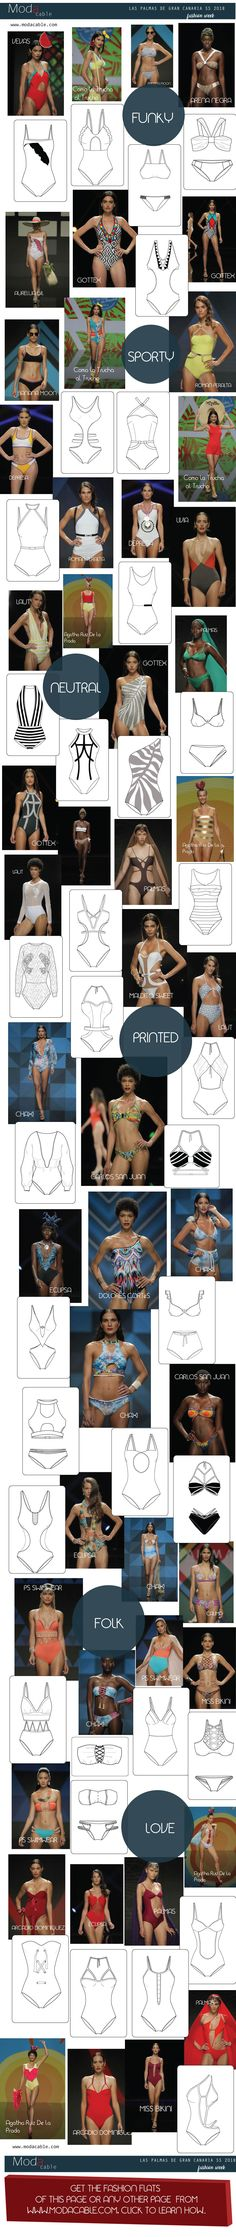 SS 2018 swimwear trends only at modacable.com...follow us for more...